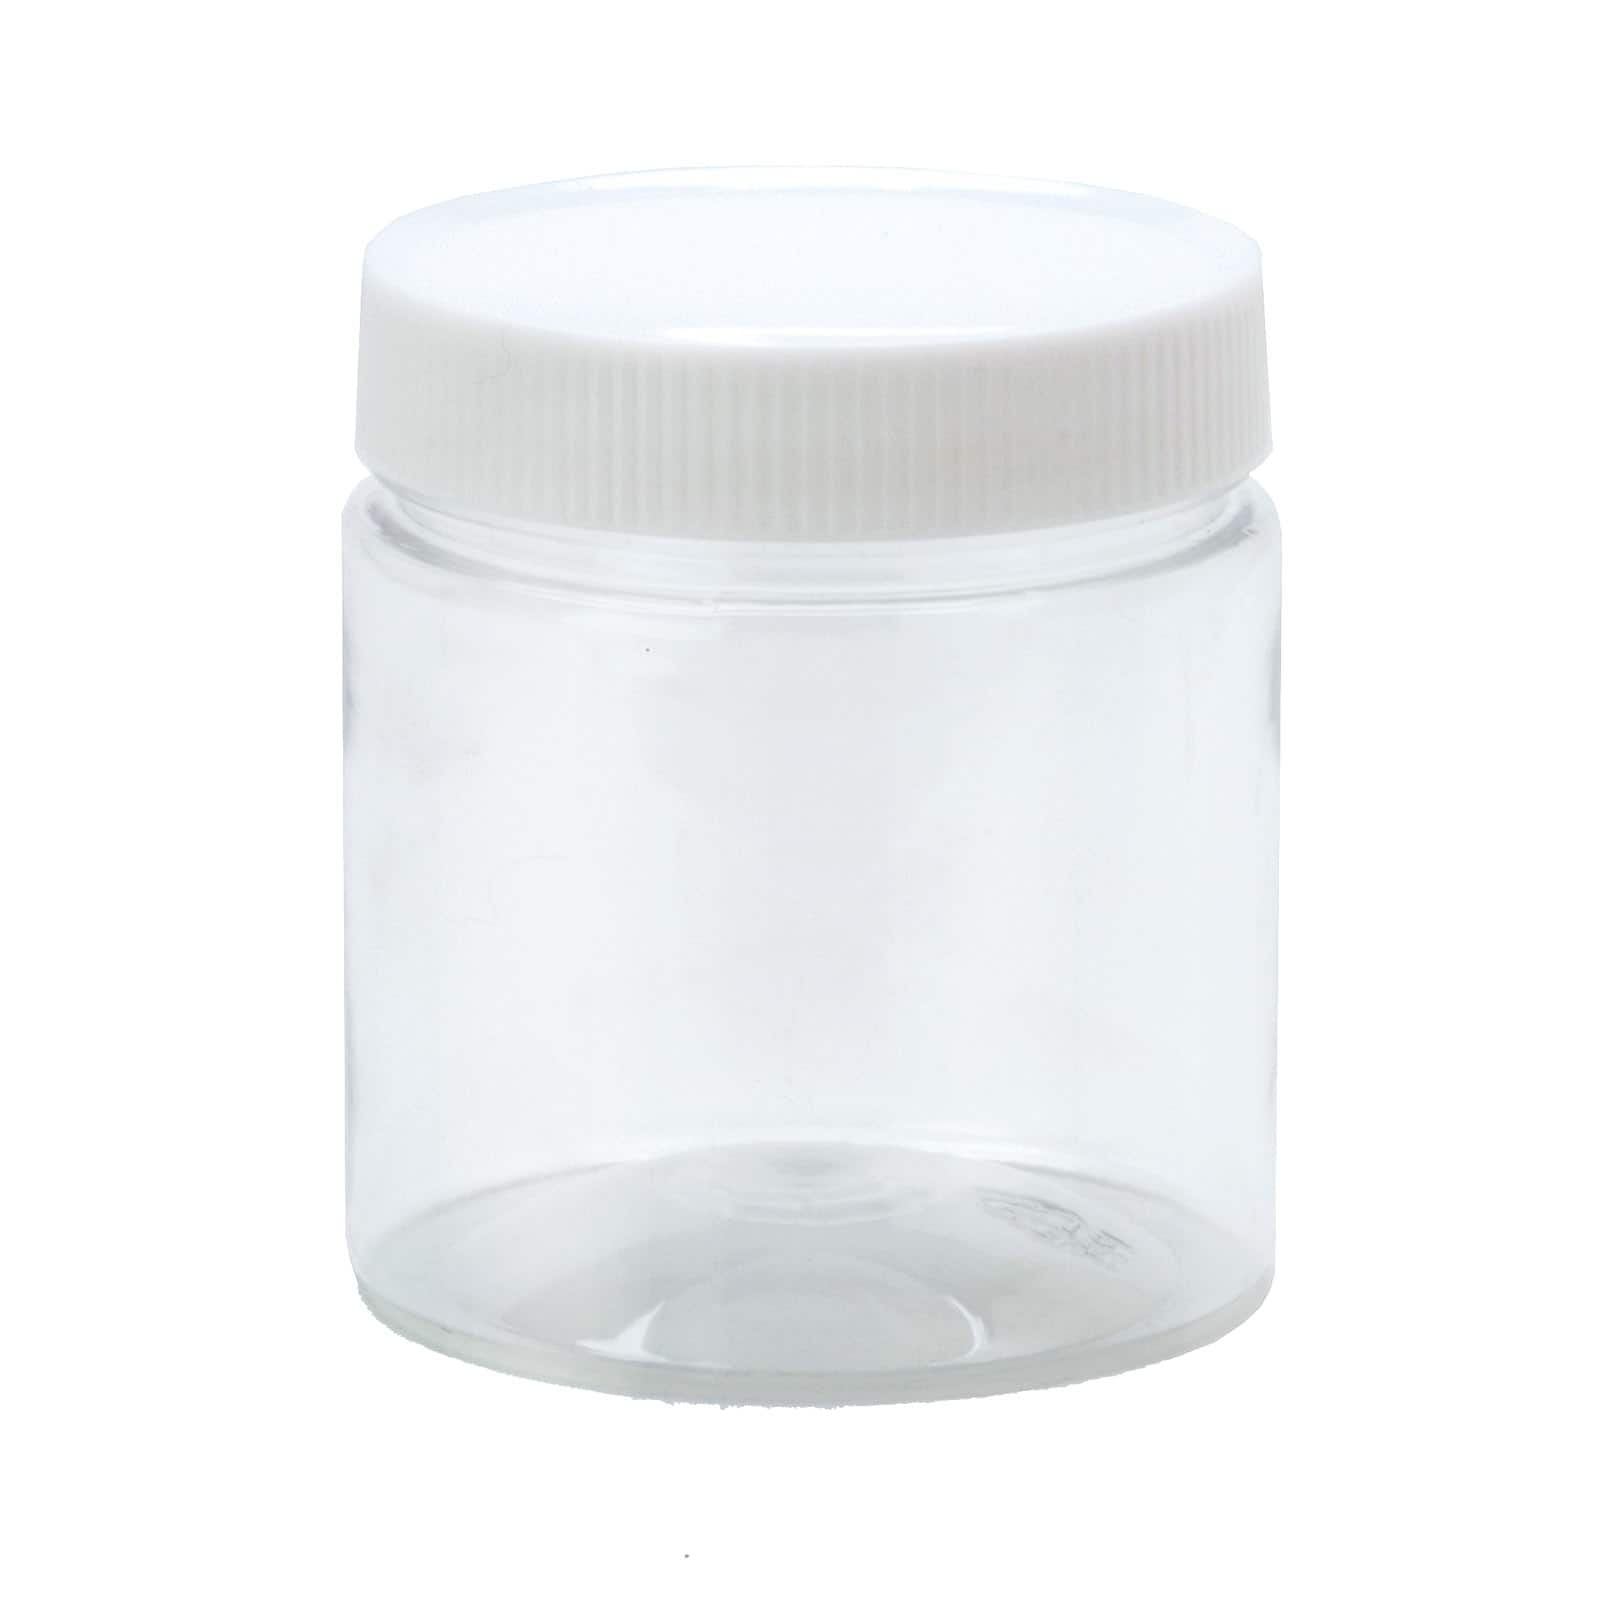 Lid And Jar Clear Plastic Jar With Lid